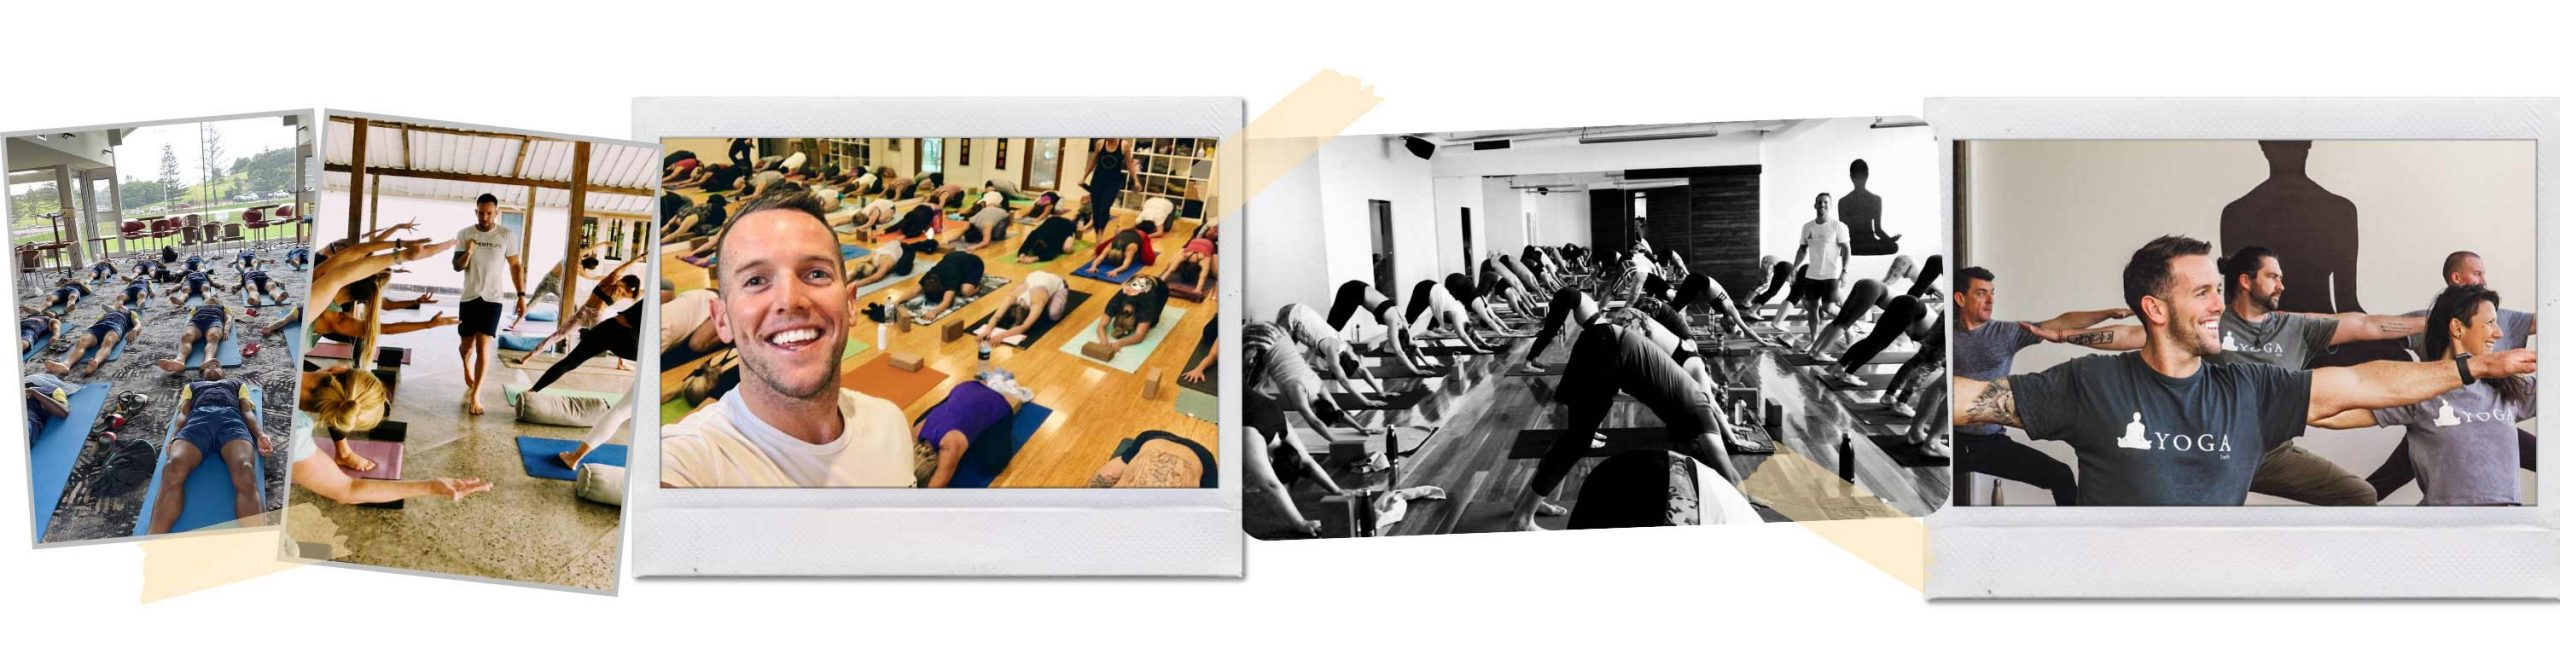 Giving back to Community through yoga